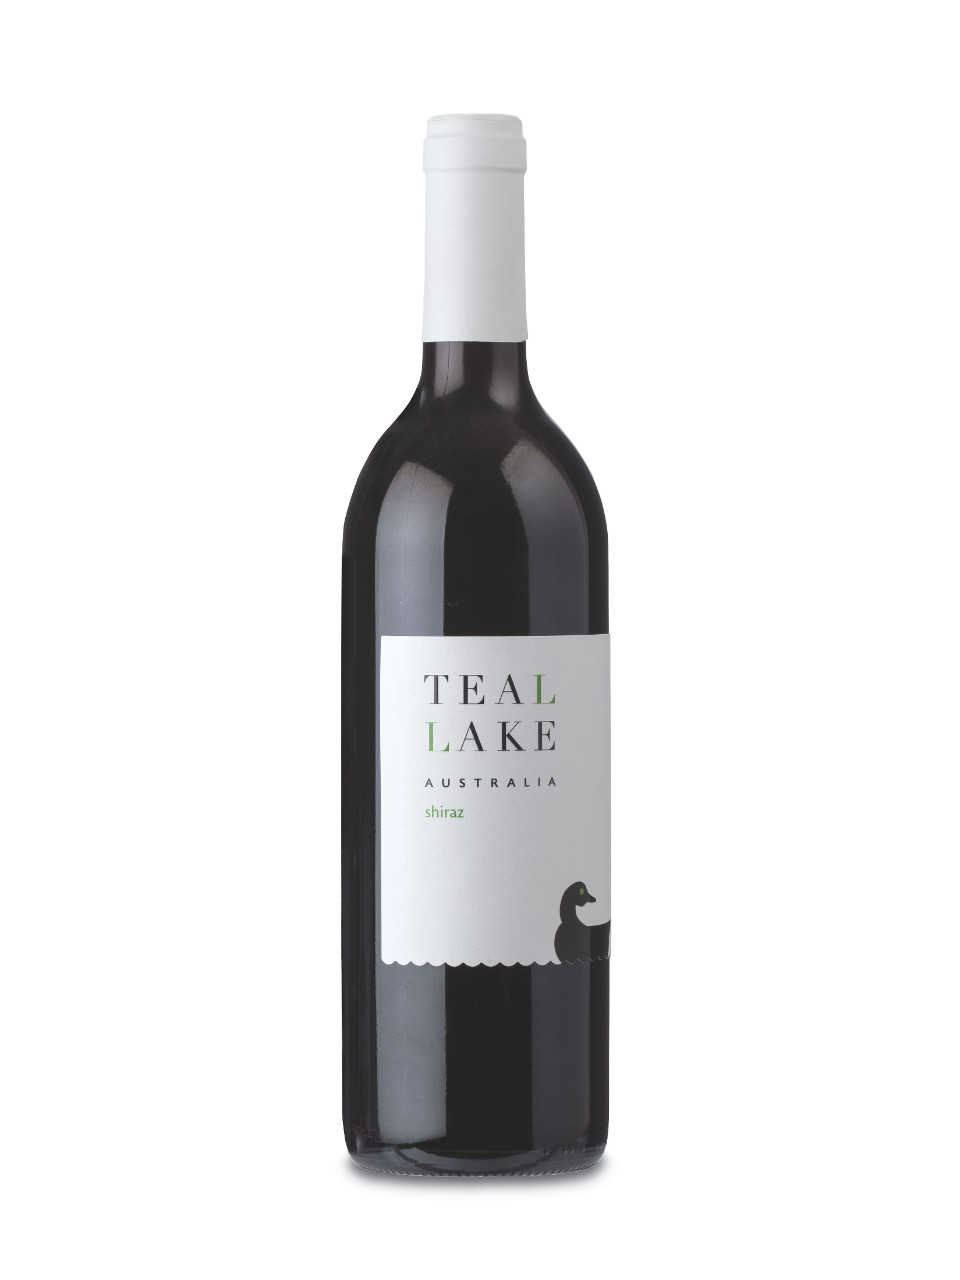 Teal Lake Shiraz KPM from LCBO